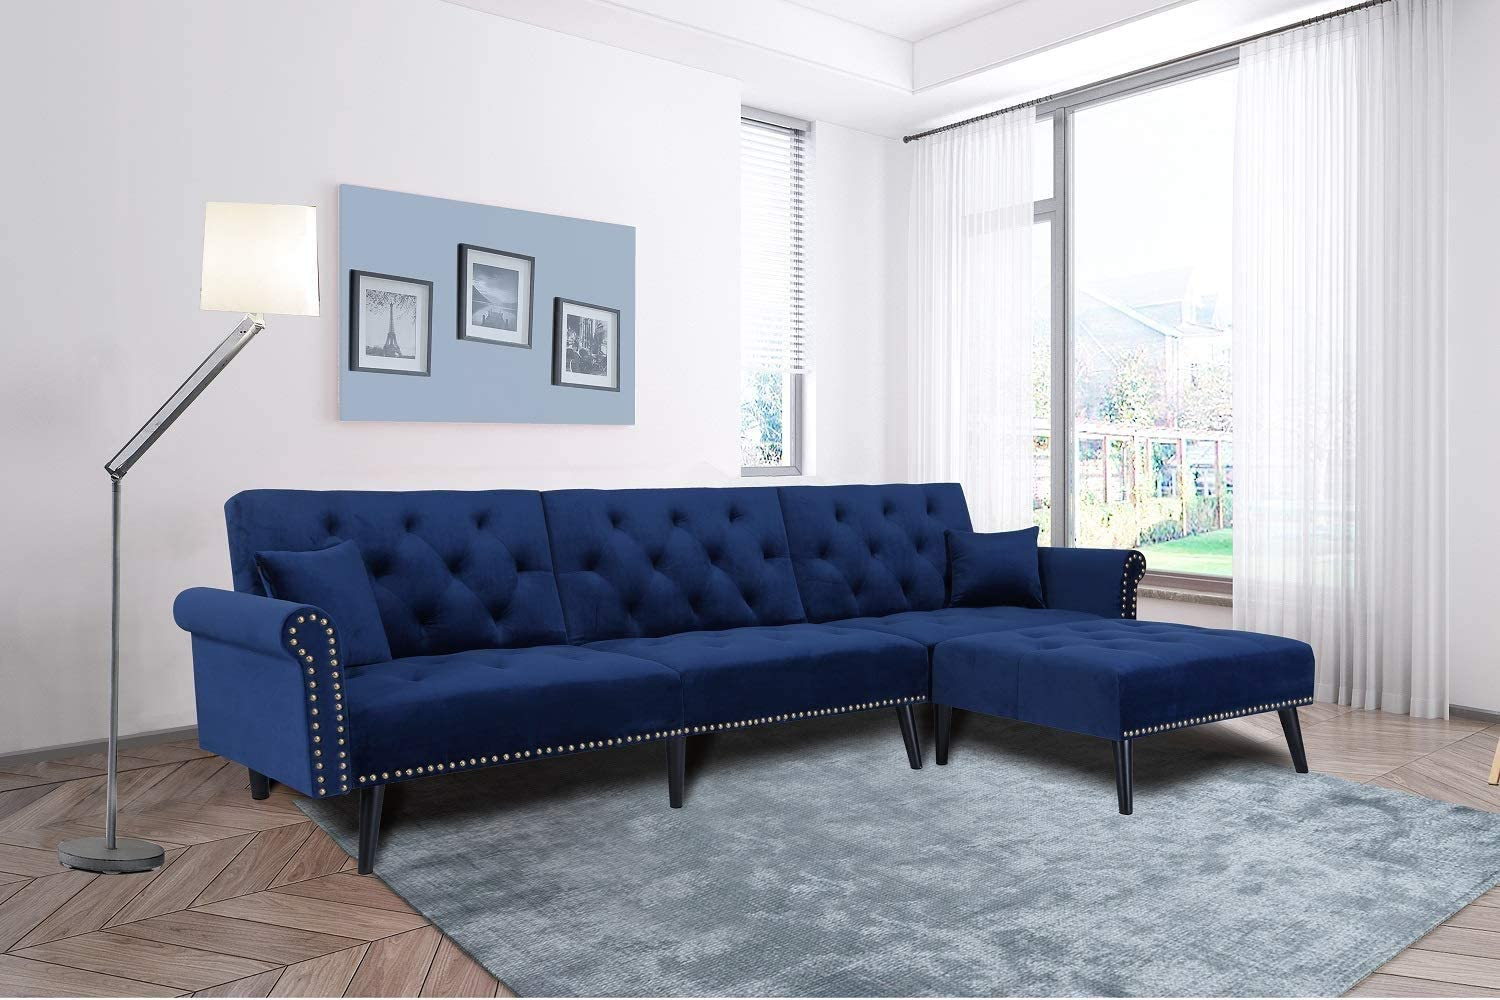 Navy Blue Velvet L Shape Sectional Couch Reversible Chaise Adjustable Back with 2 Pillows for Living Room Furniture FCNEHLM Convertible Sofa Bed Sleeper